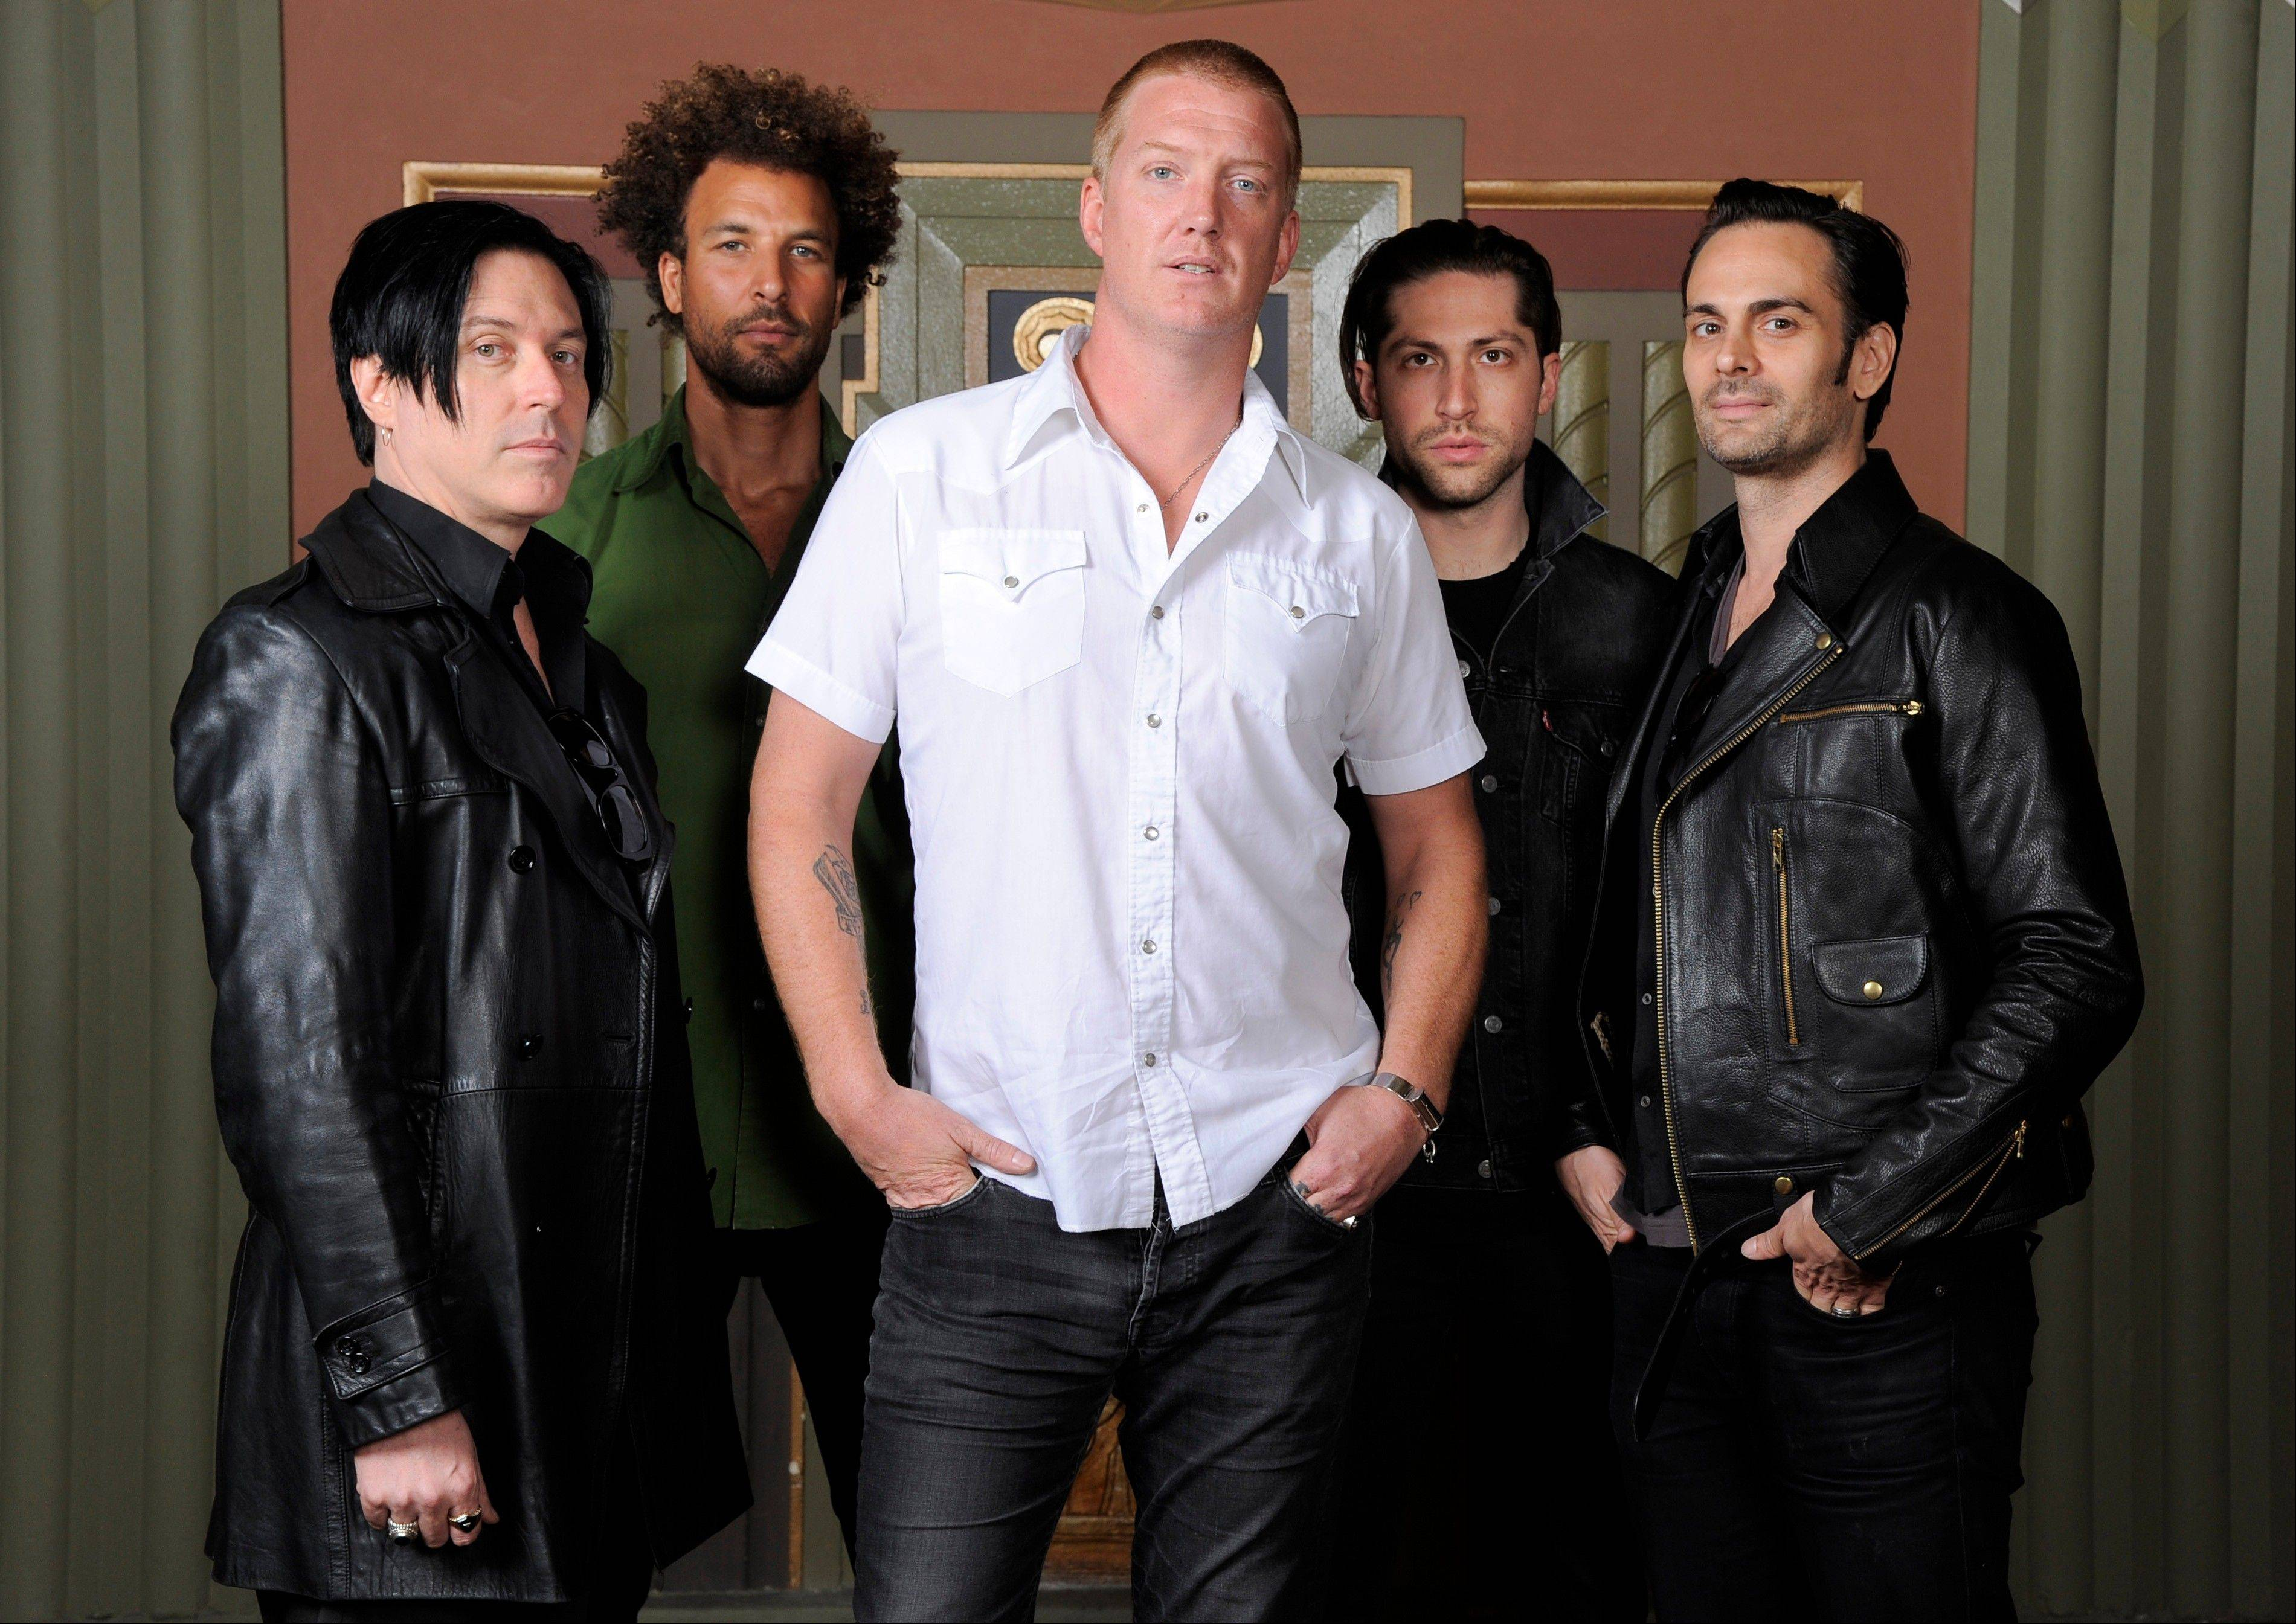 Heavy new Queens of the Stone Age album looks at life after death